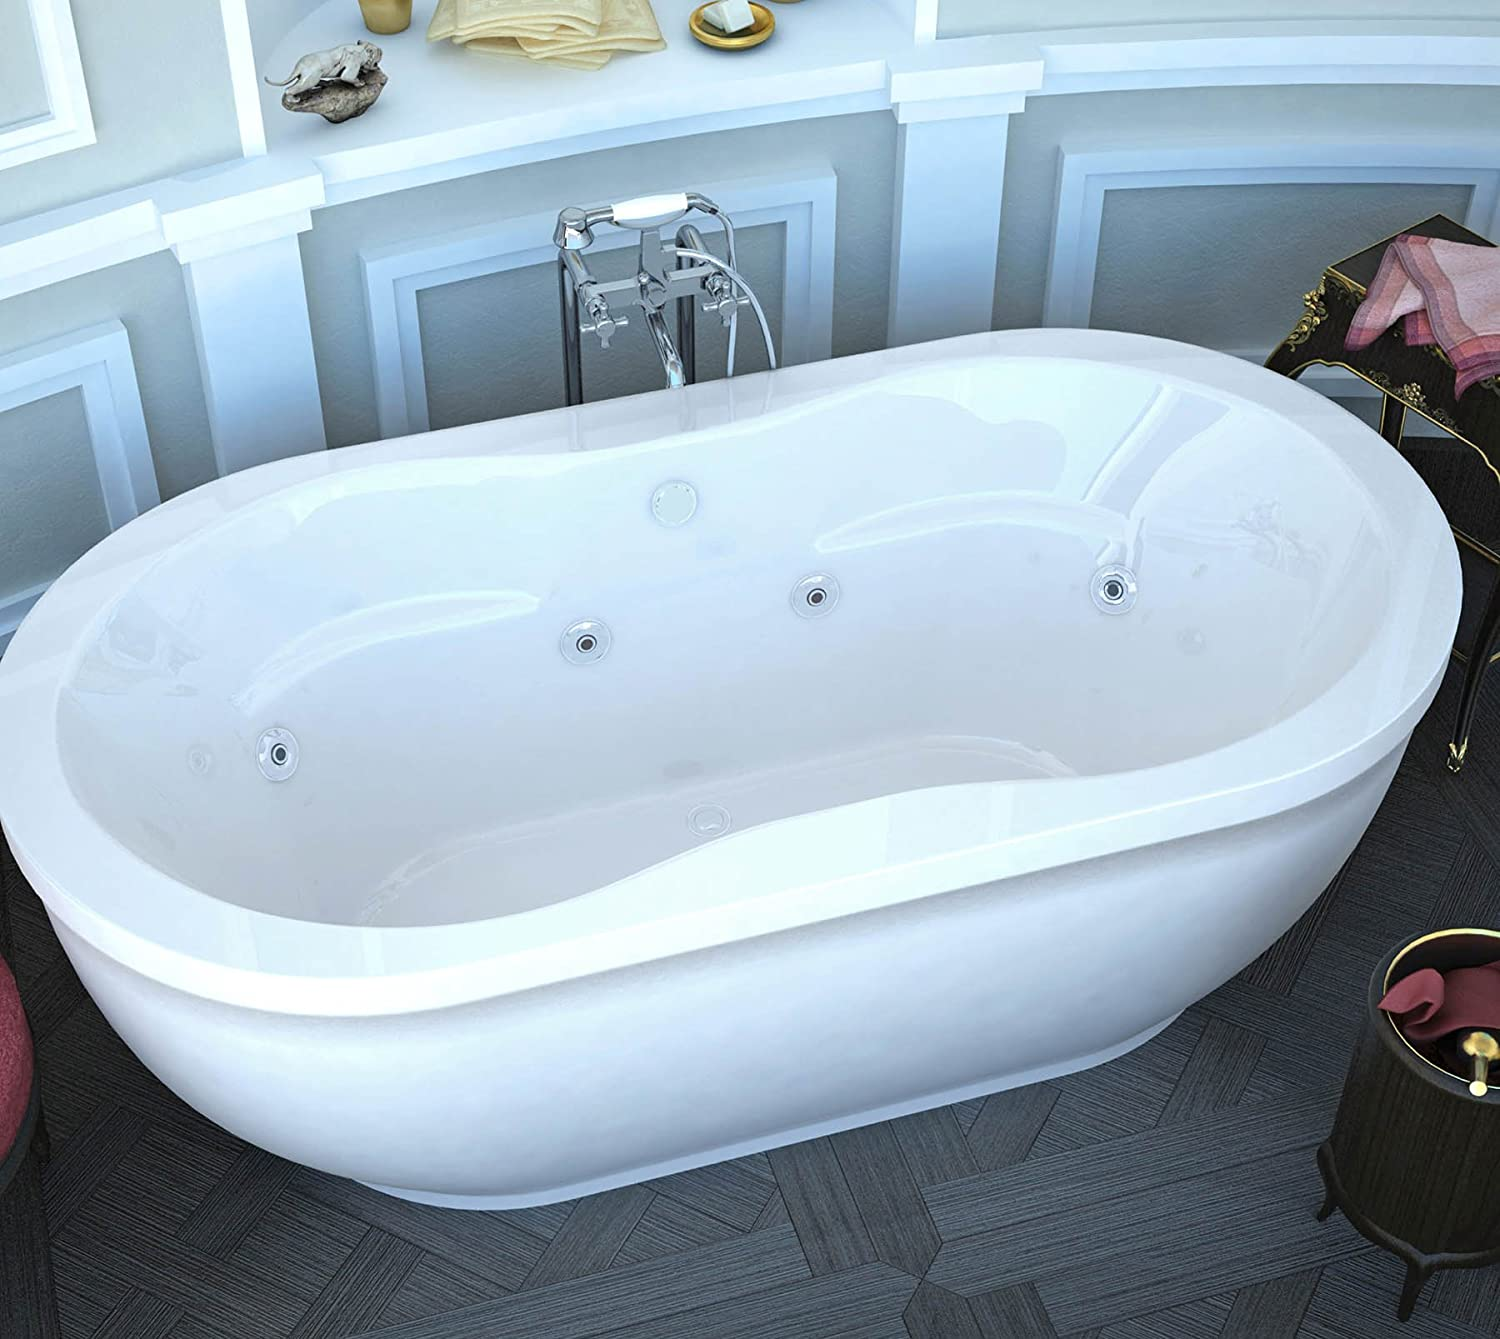 What Is A Garden Tub Sylve. What Is A Garden Tub   Sylve net